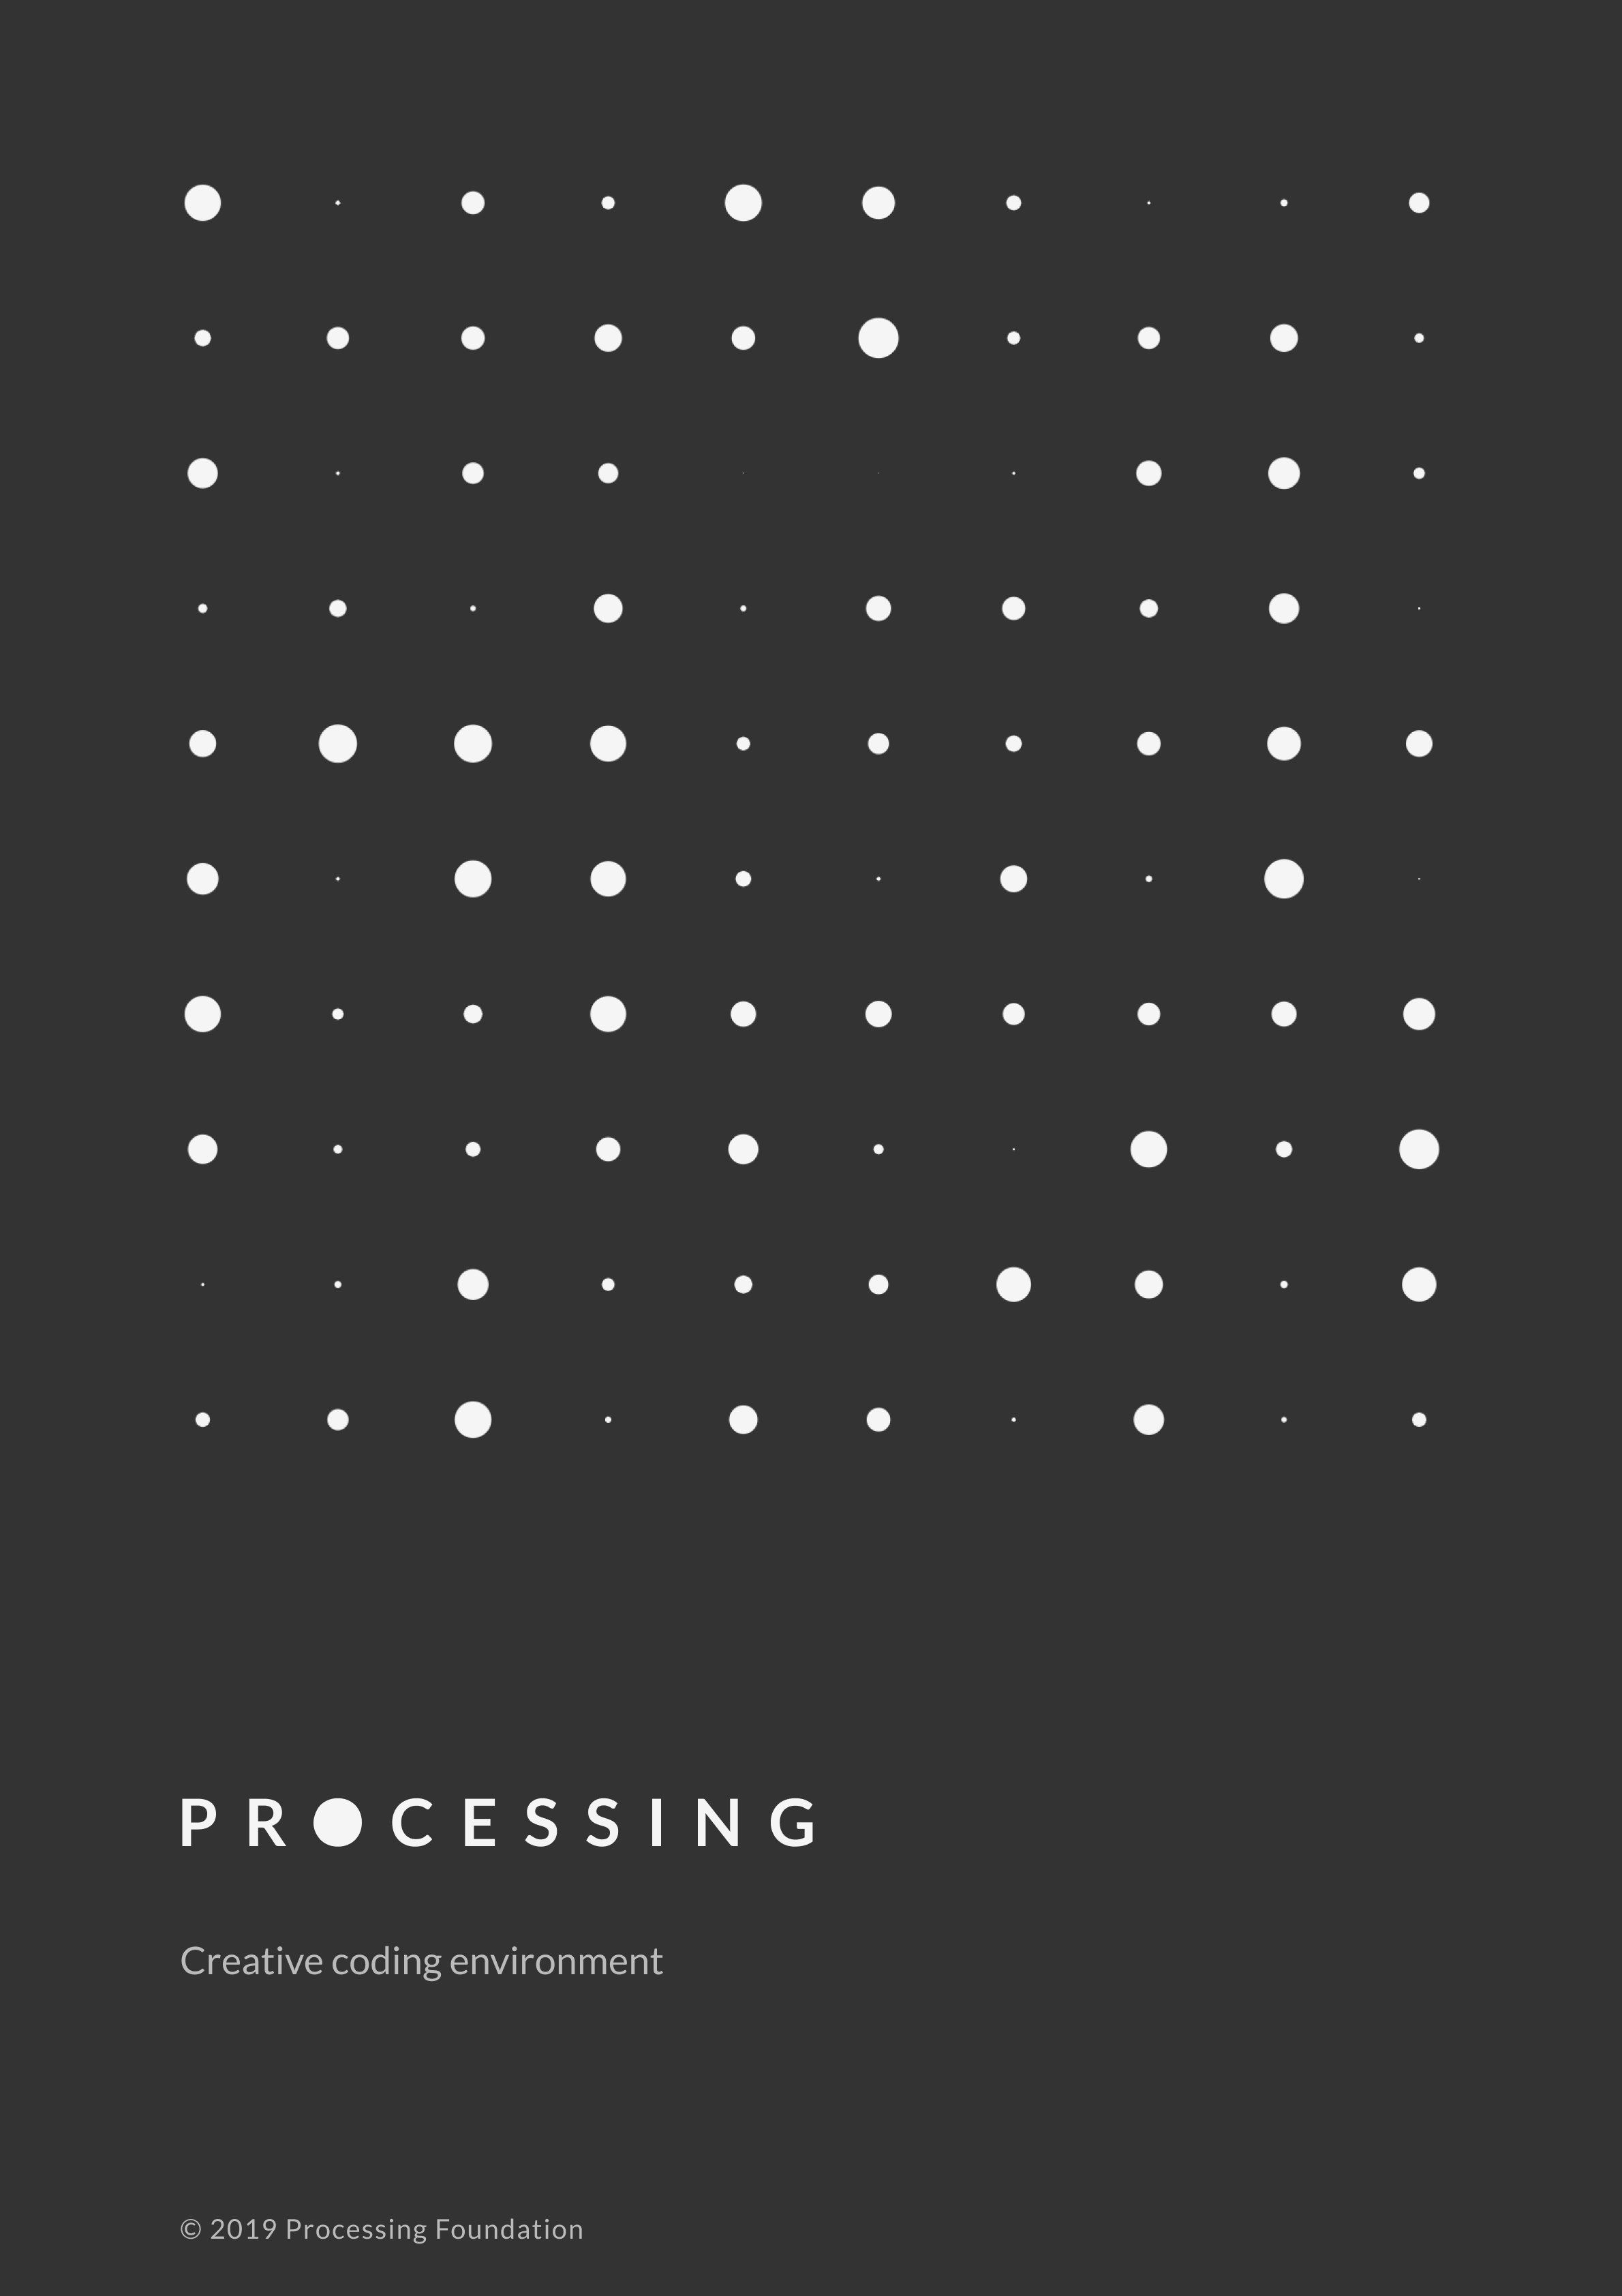 Processing poster a4 dark 4x